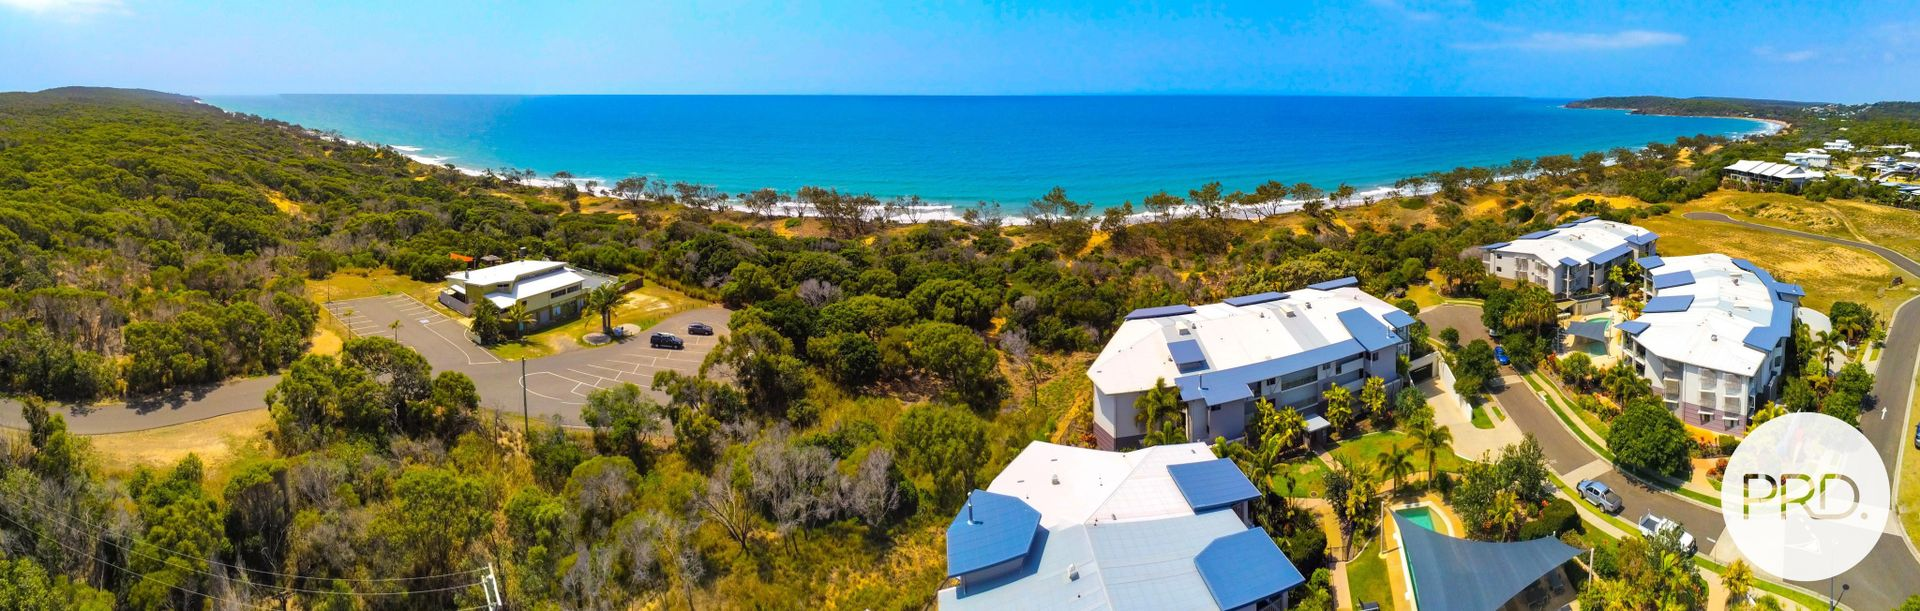 Beaches Village Circuit, Agnes Water QLD 4677, Image 1